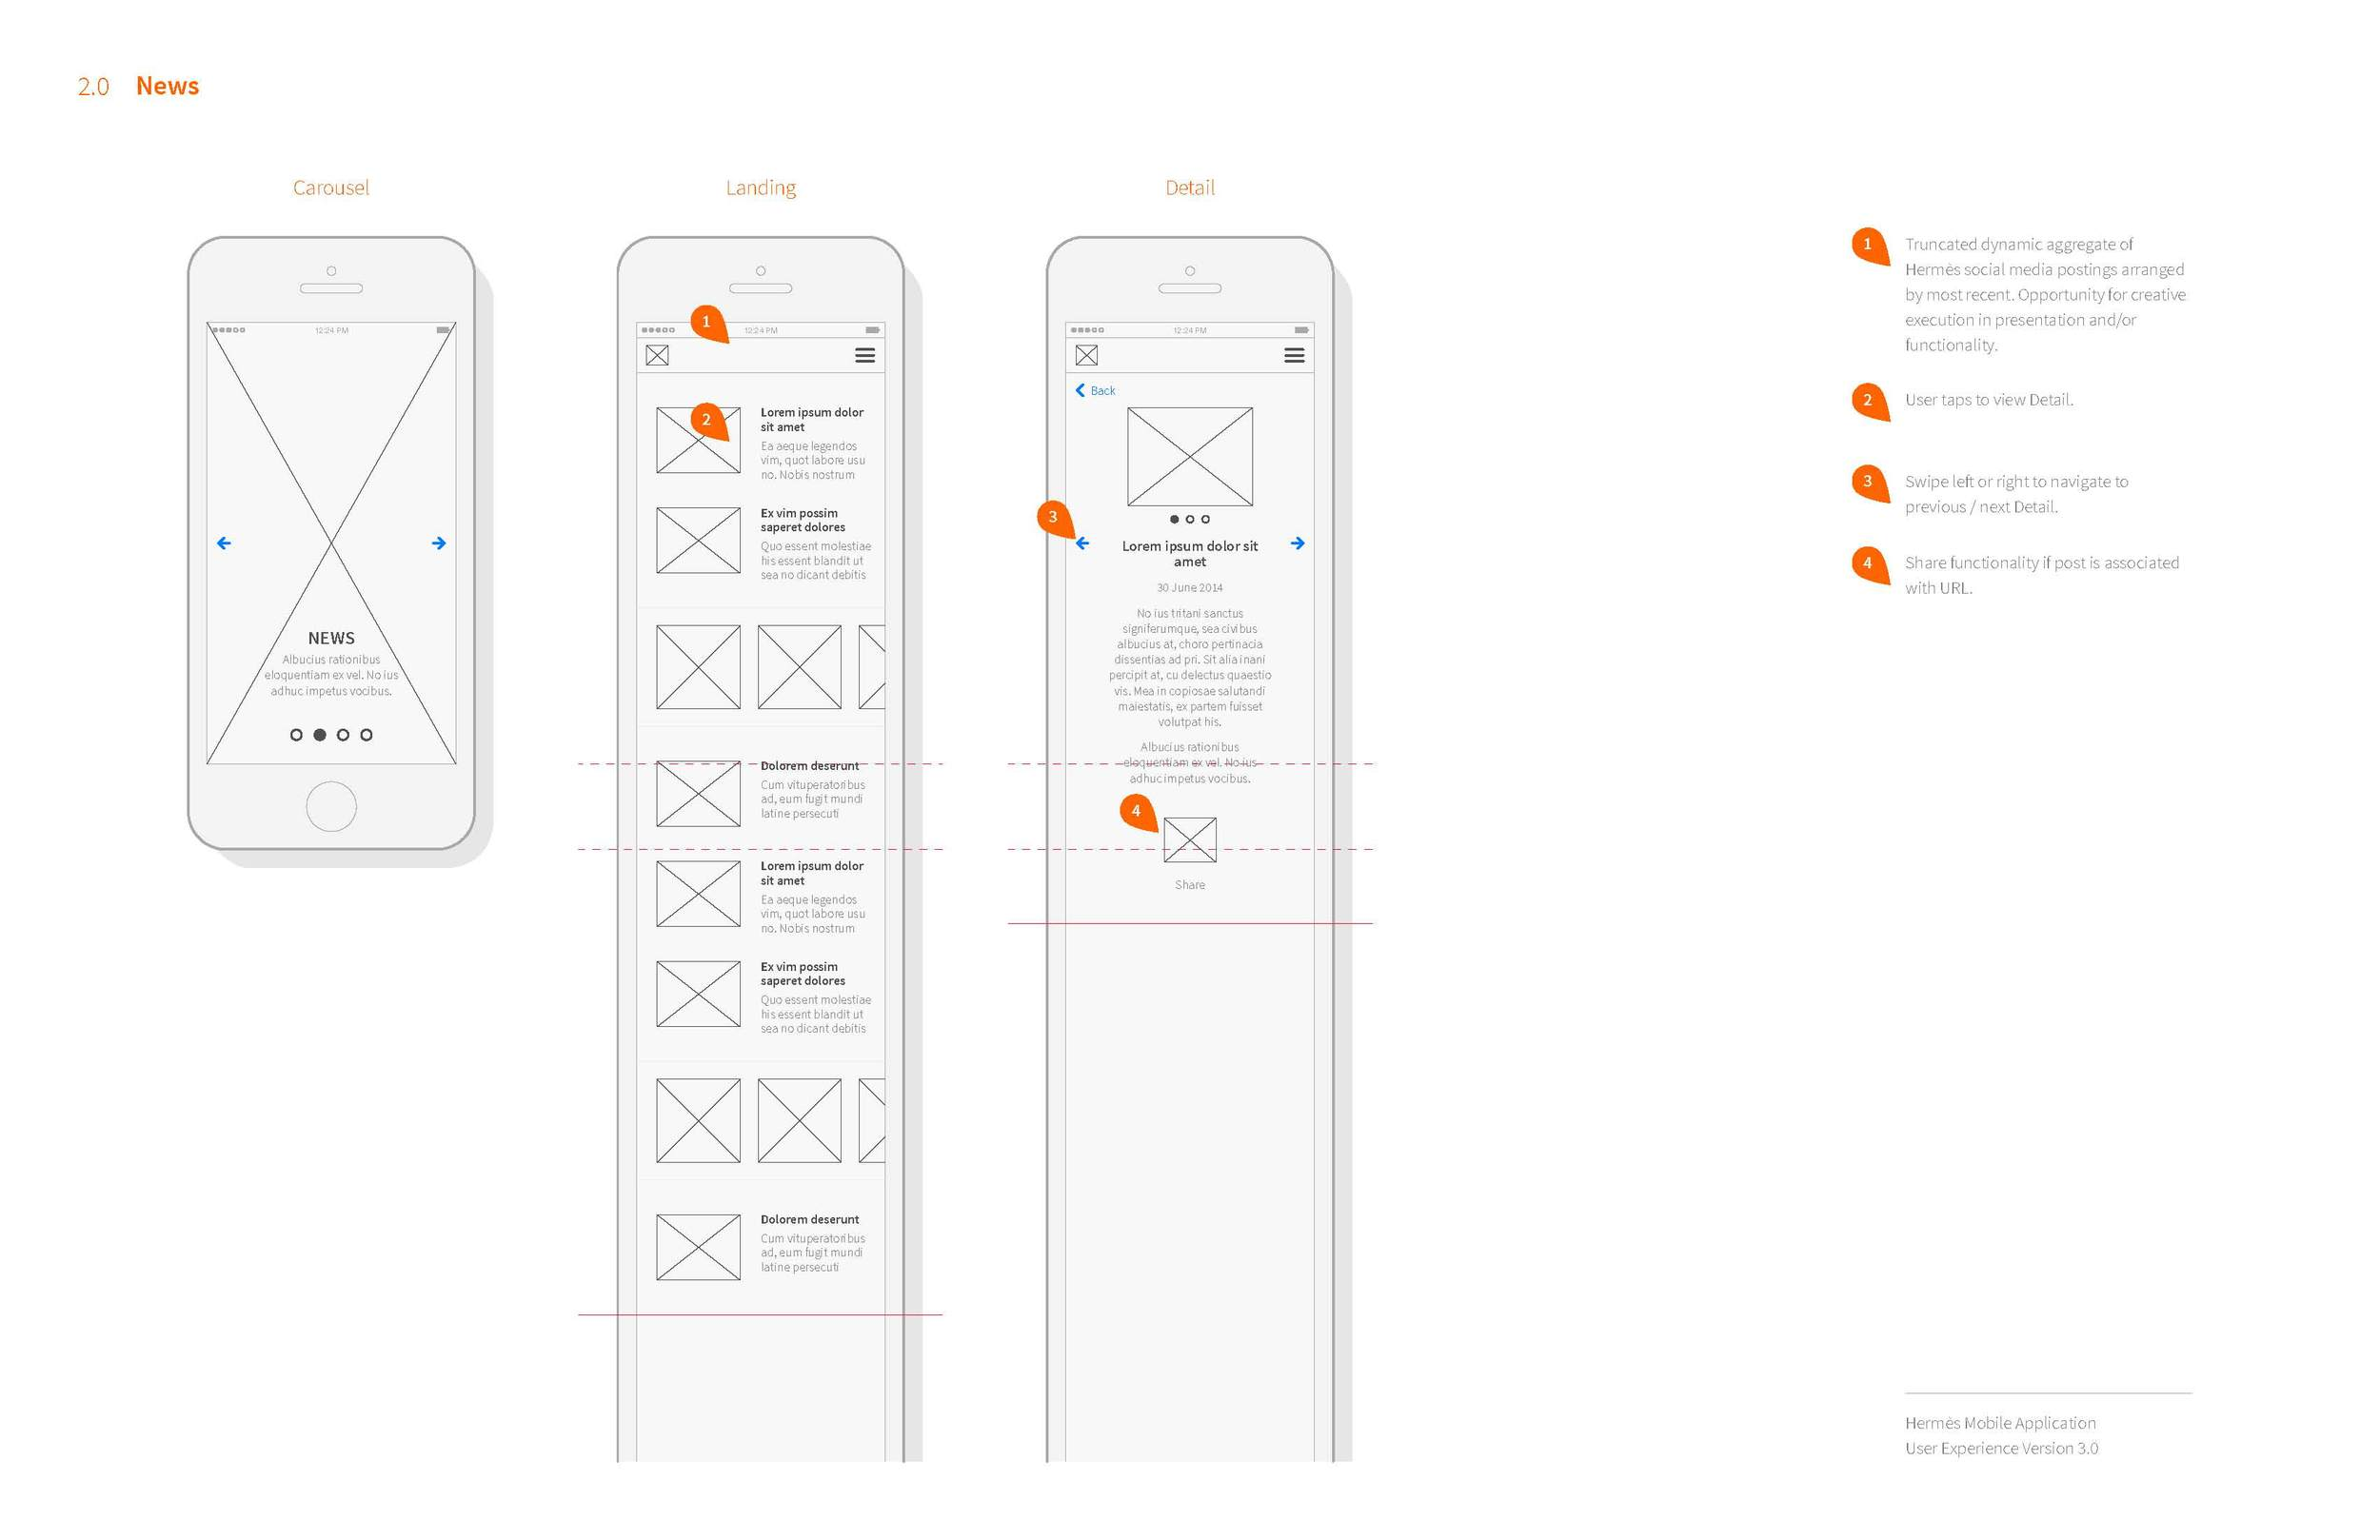 hermes-caraousel-wireframes_Page_09.jpg